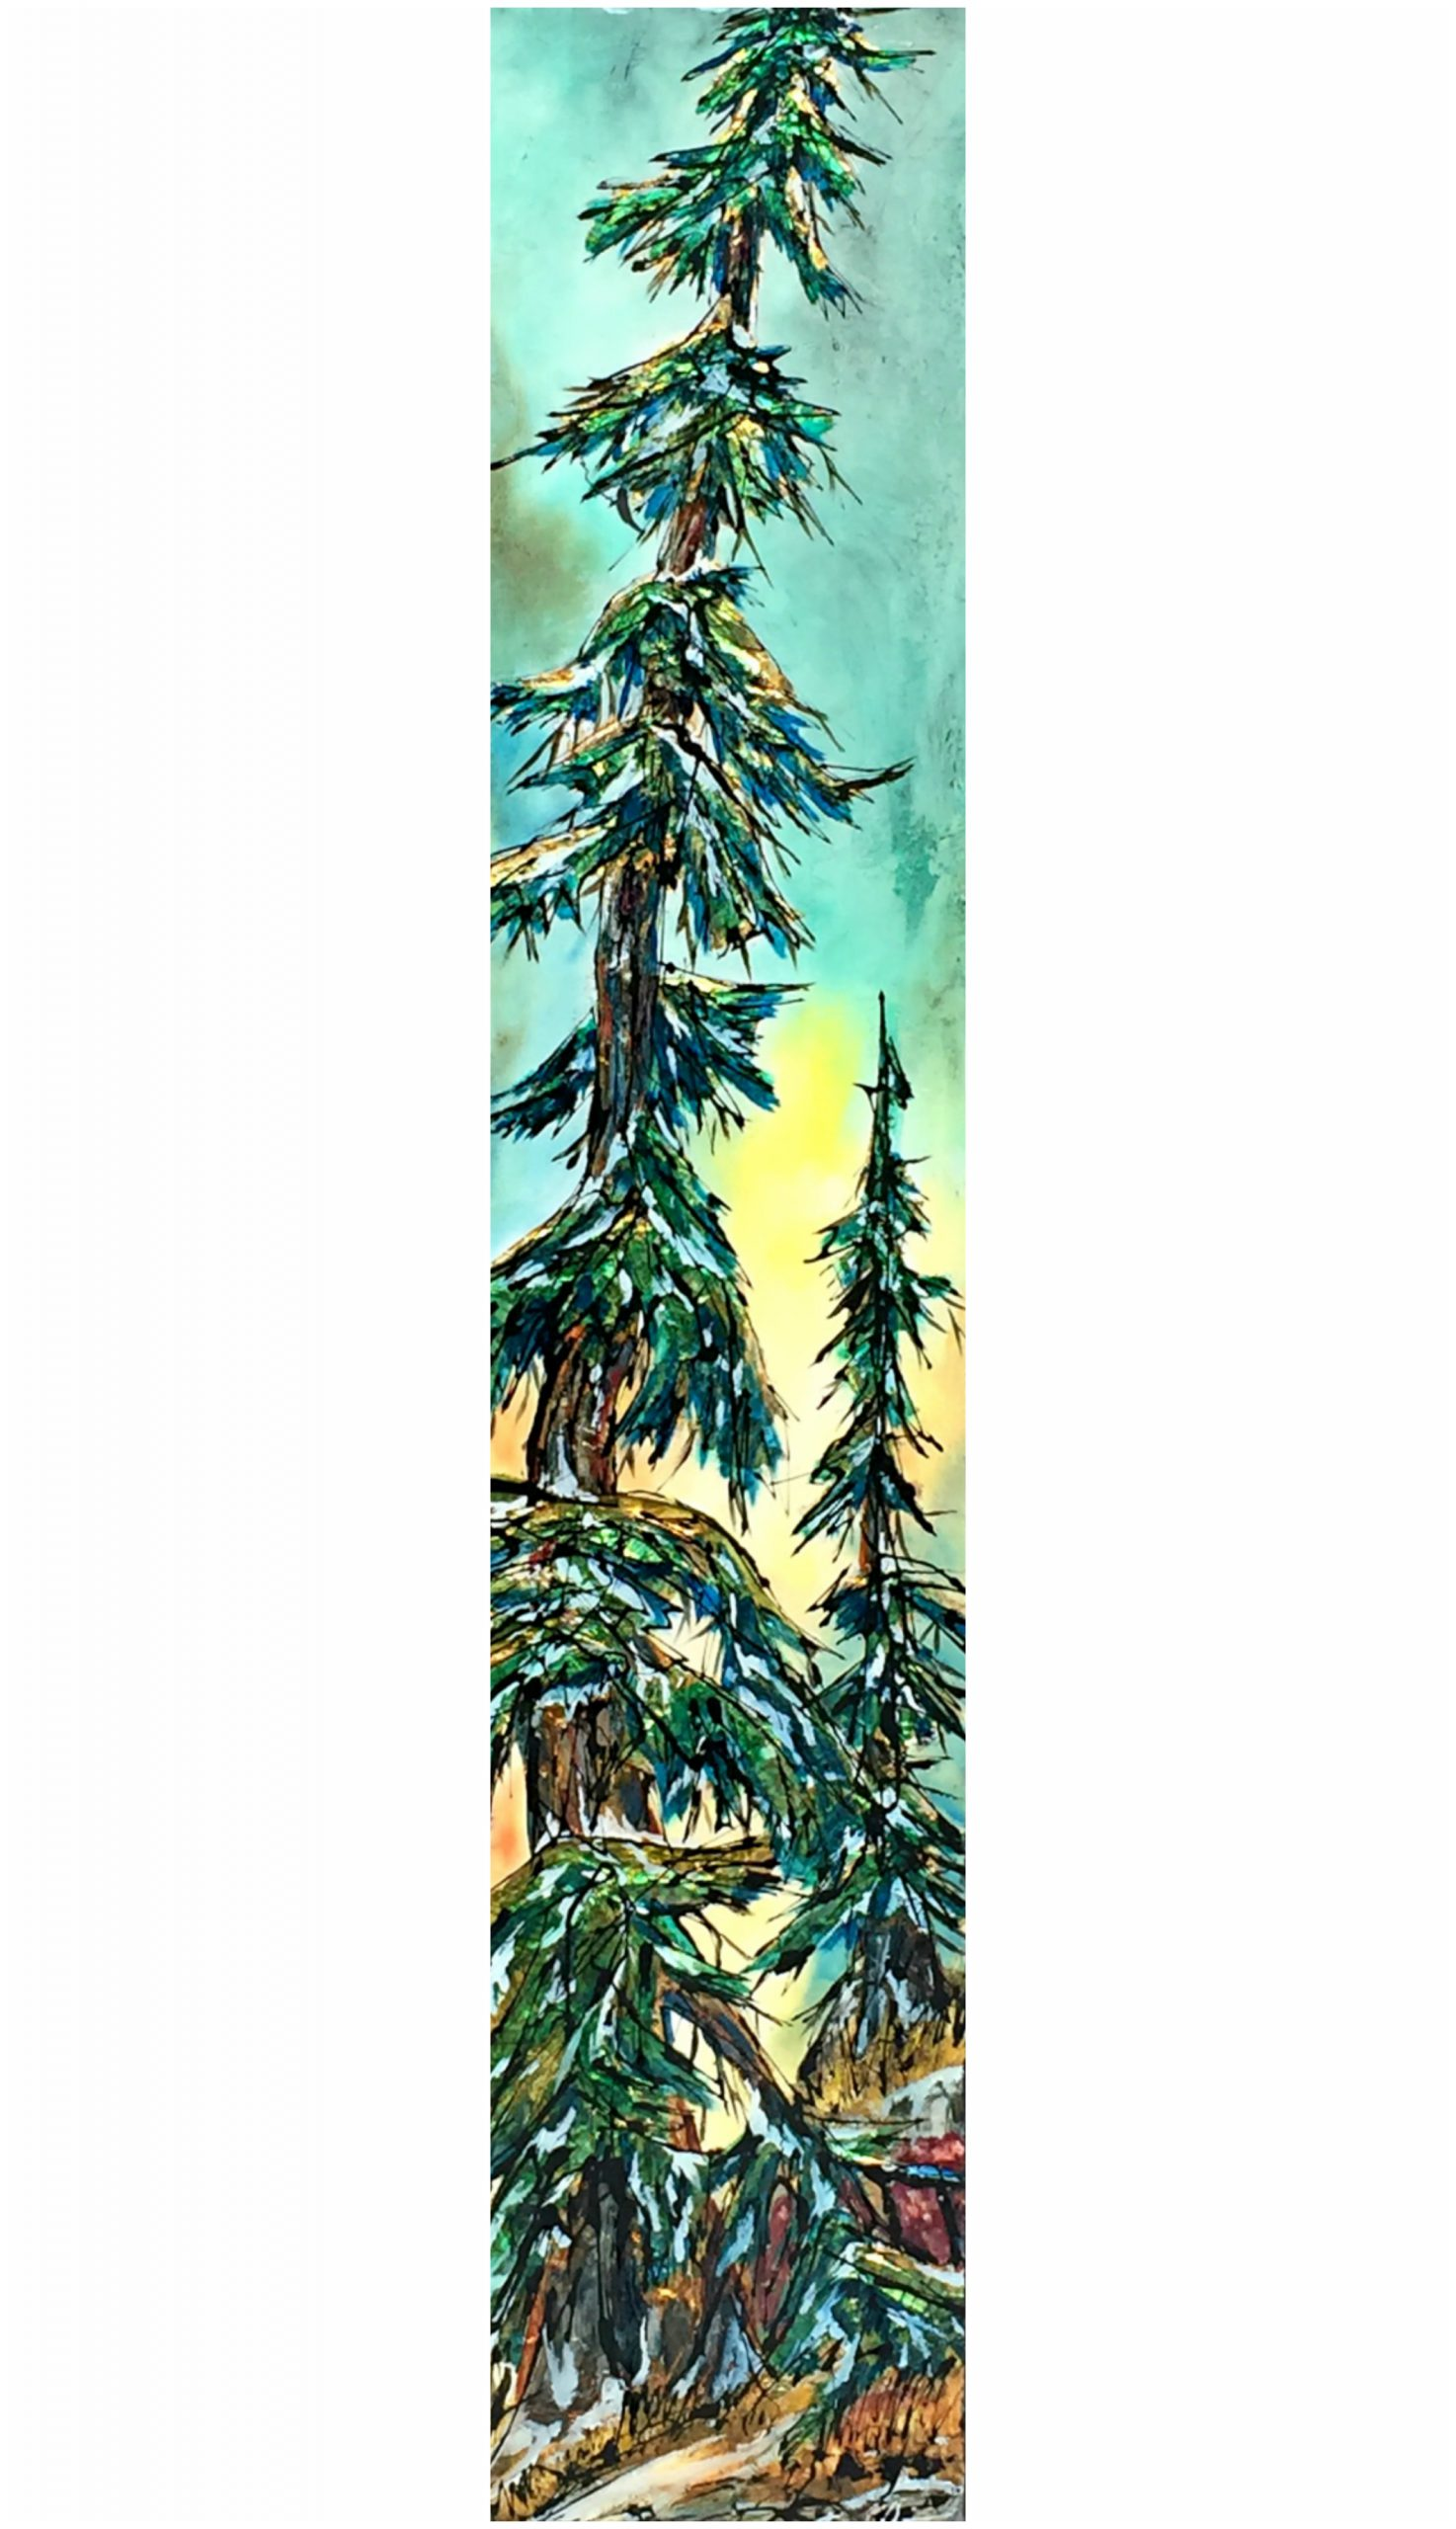 Indecision, mixed media tree painting by David Zimmerman | Effusion Art Gallery + Cast Glass Studio, Invermere BC